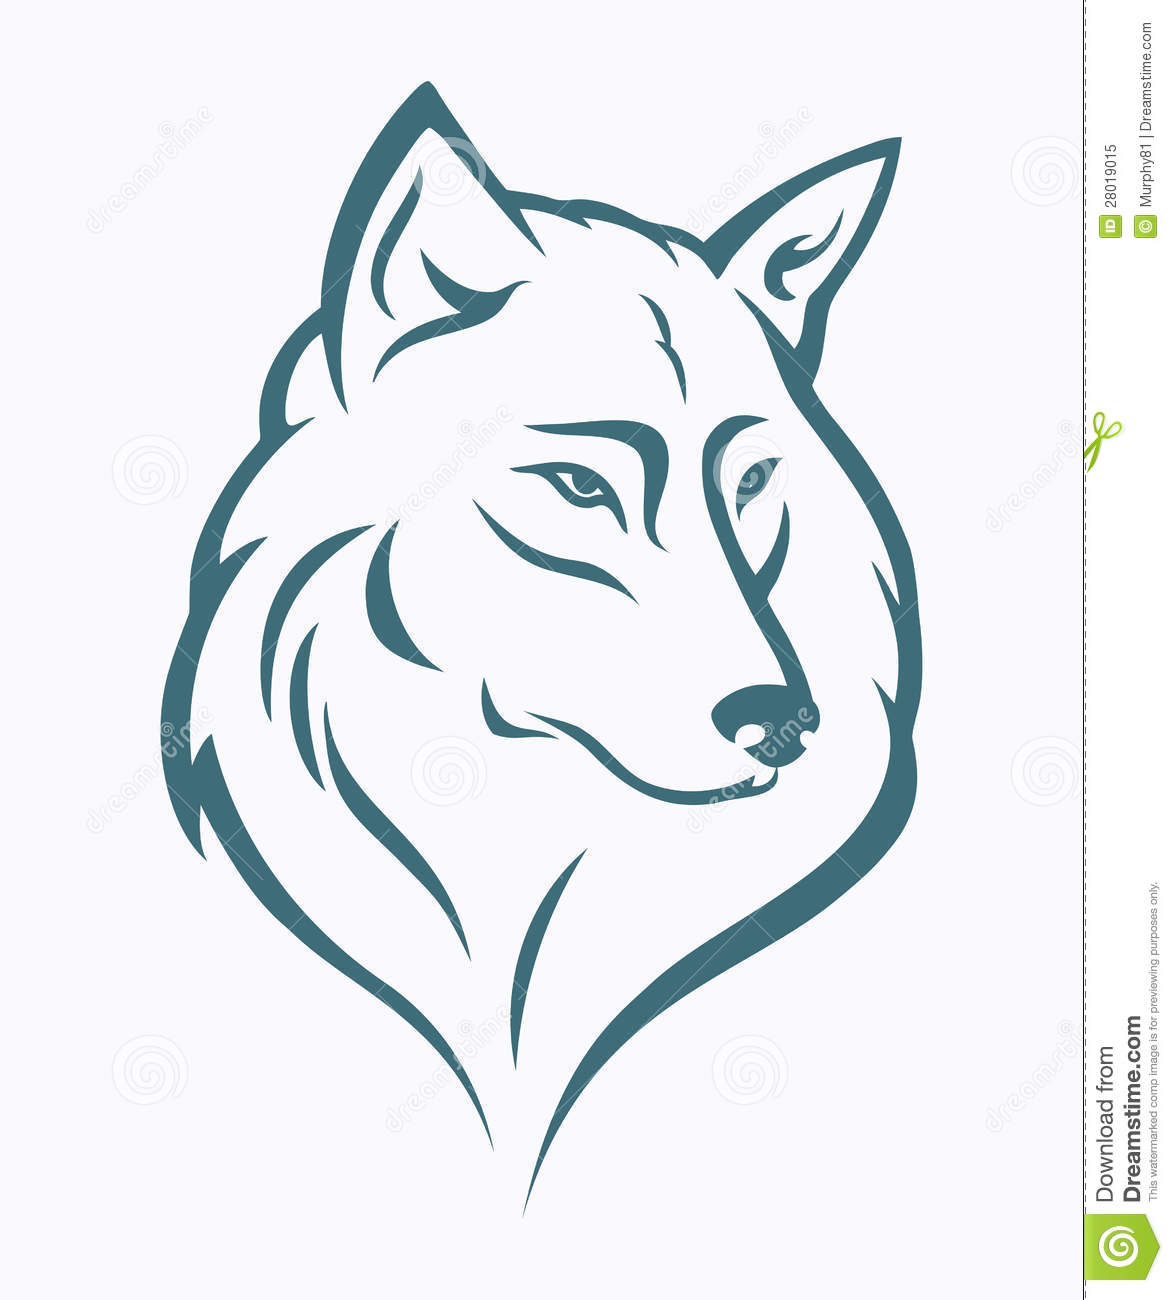 T te de loup illustration de vecteur illustration du beau 28019015 - Dessin de loup simple ...